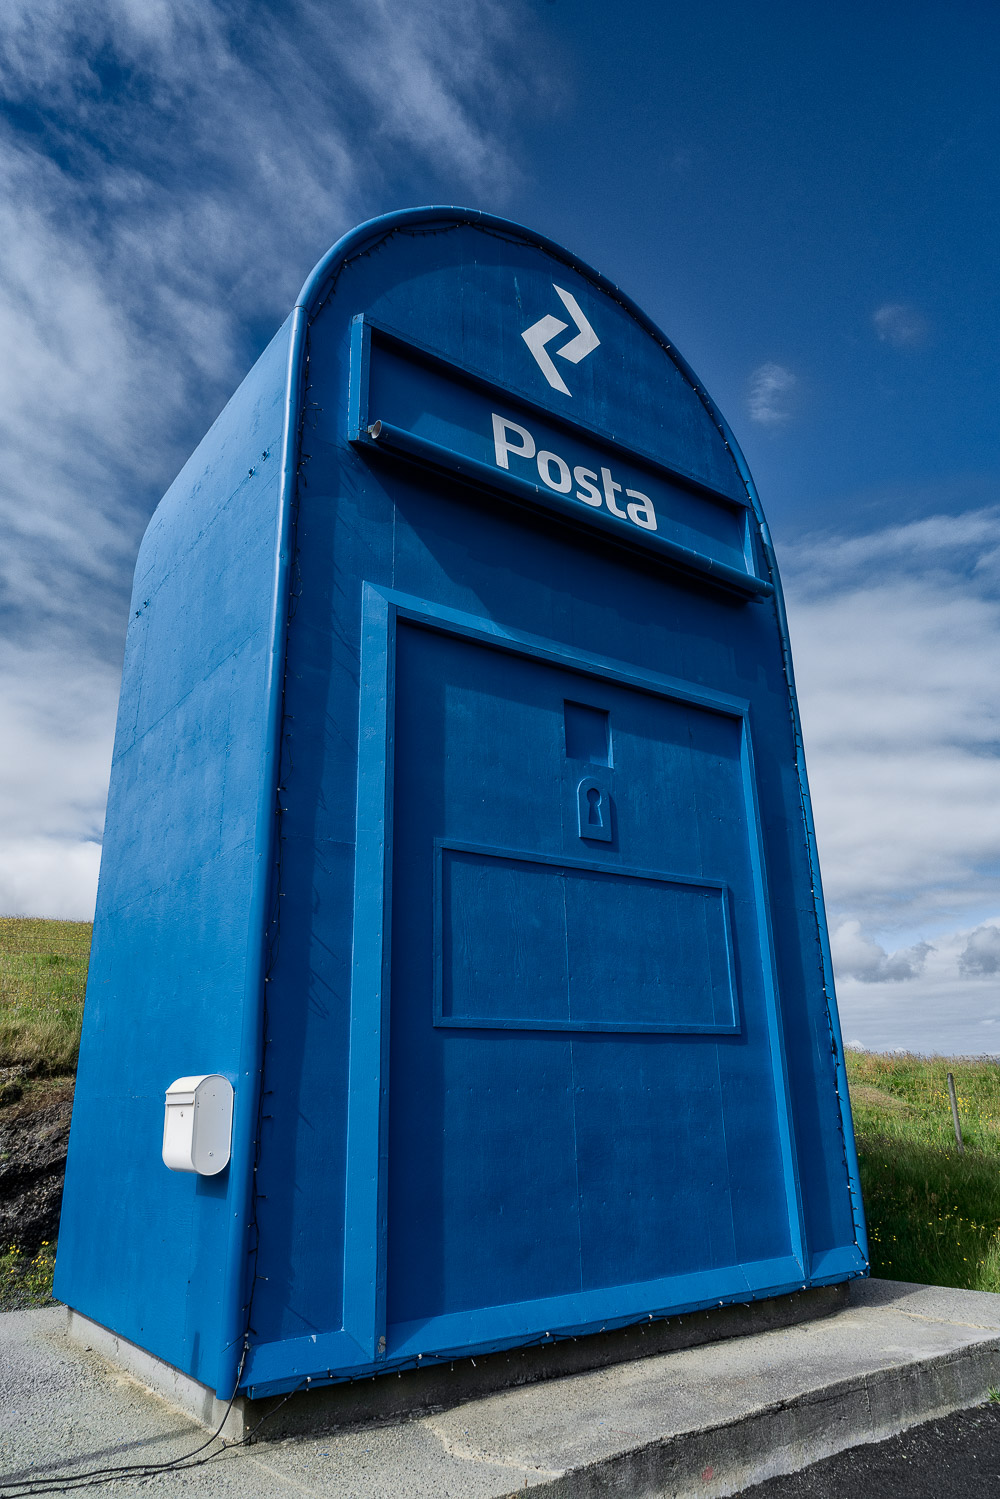 Possibly the    world's largest letterbox    in the town of    Skopun    on the island of    Sandoy    in the    Faroe Islands   .